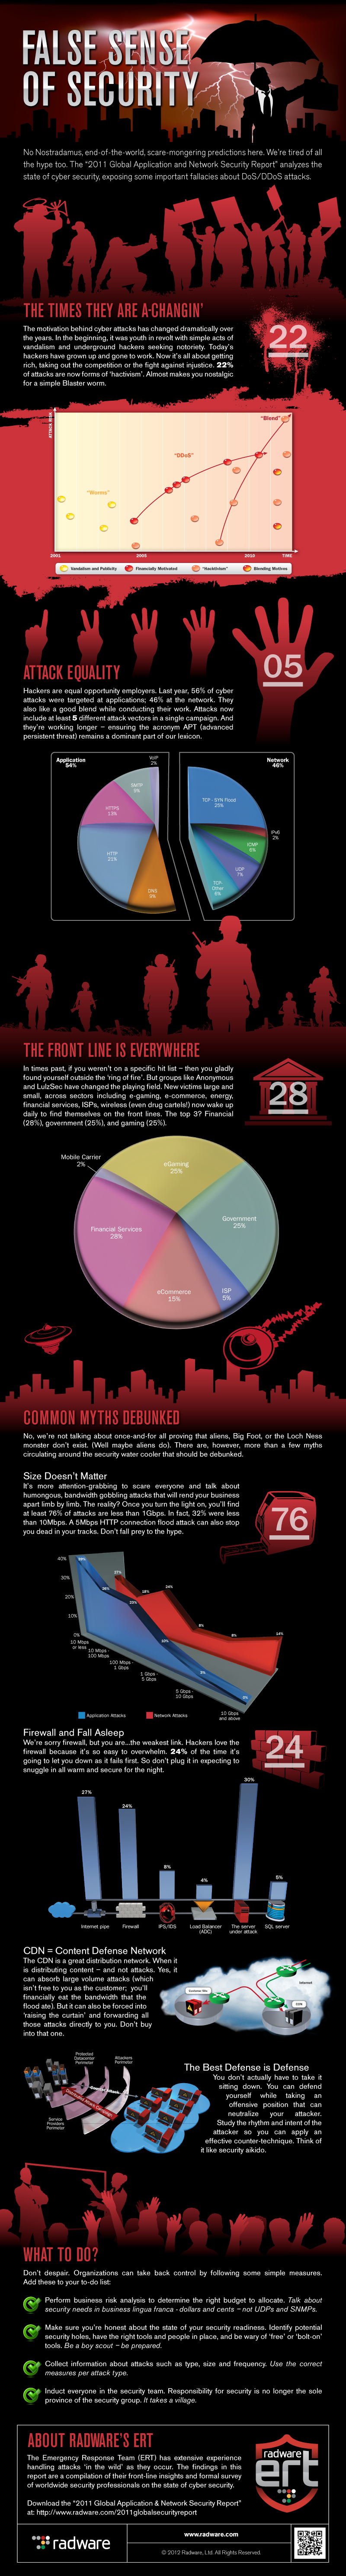 2011 Global Application & Network Security Infographic